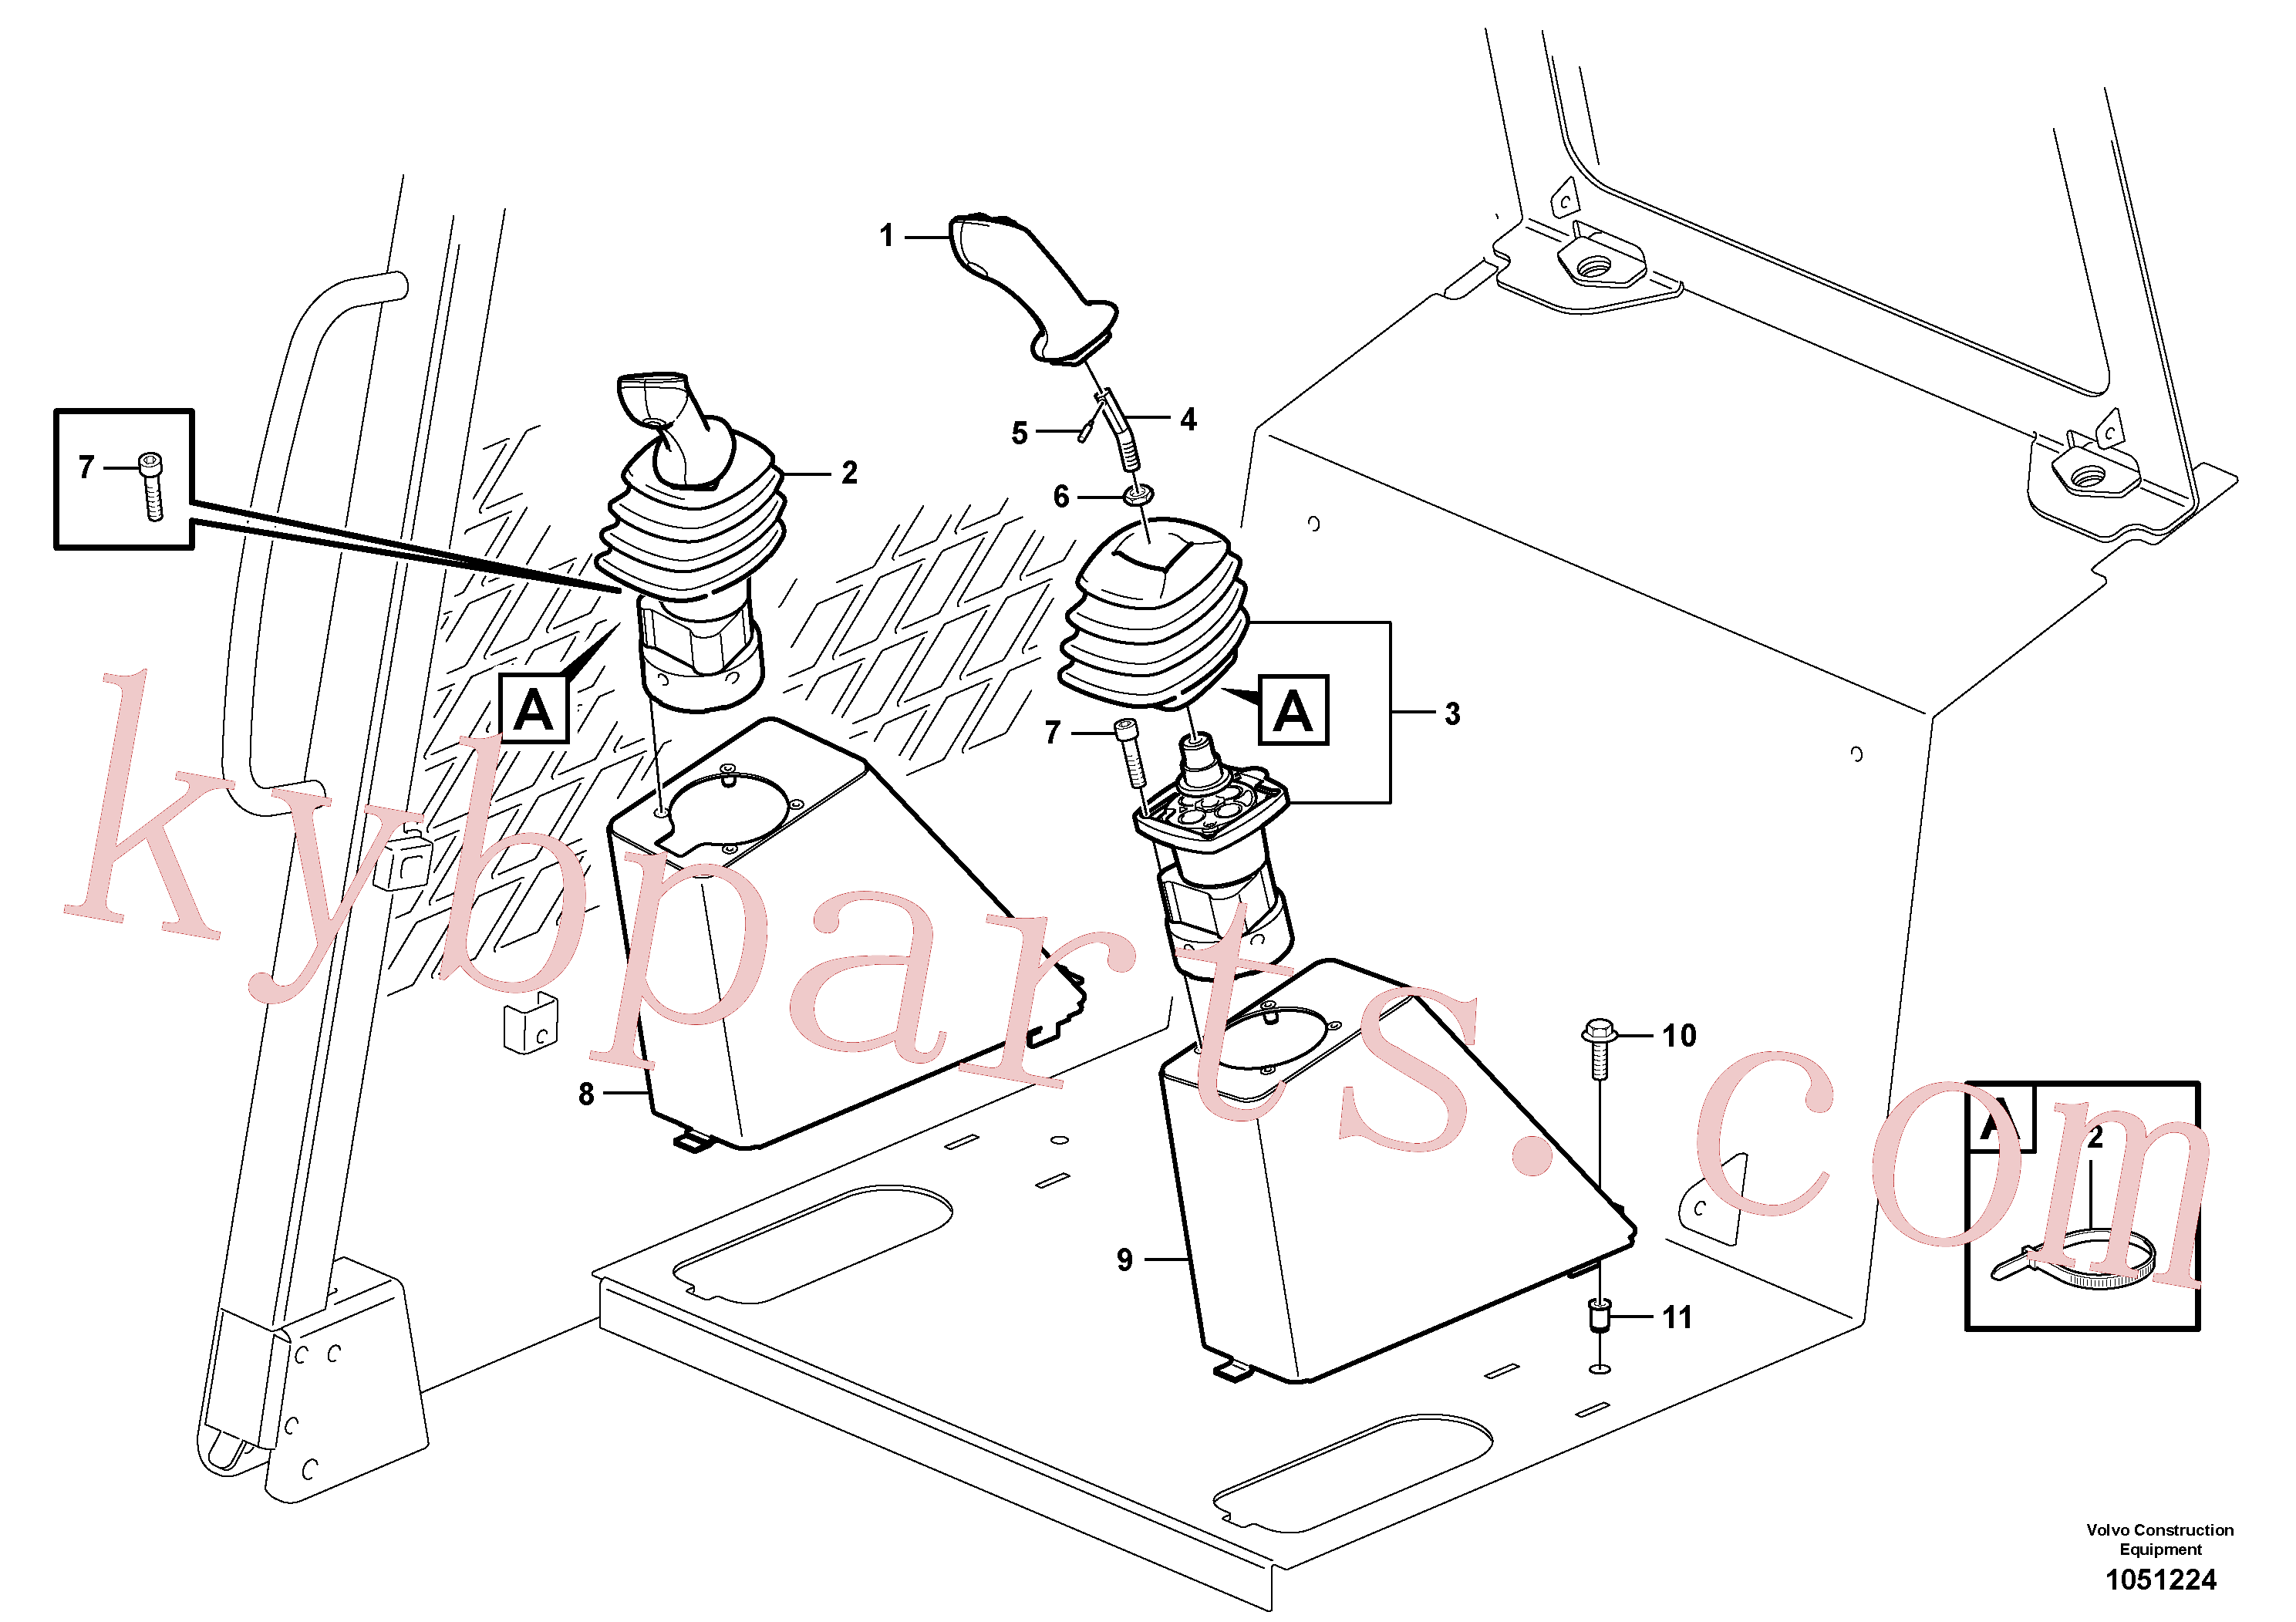 VOE15099103 for Volvo Optional hand controls(1051224 assembly)